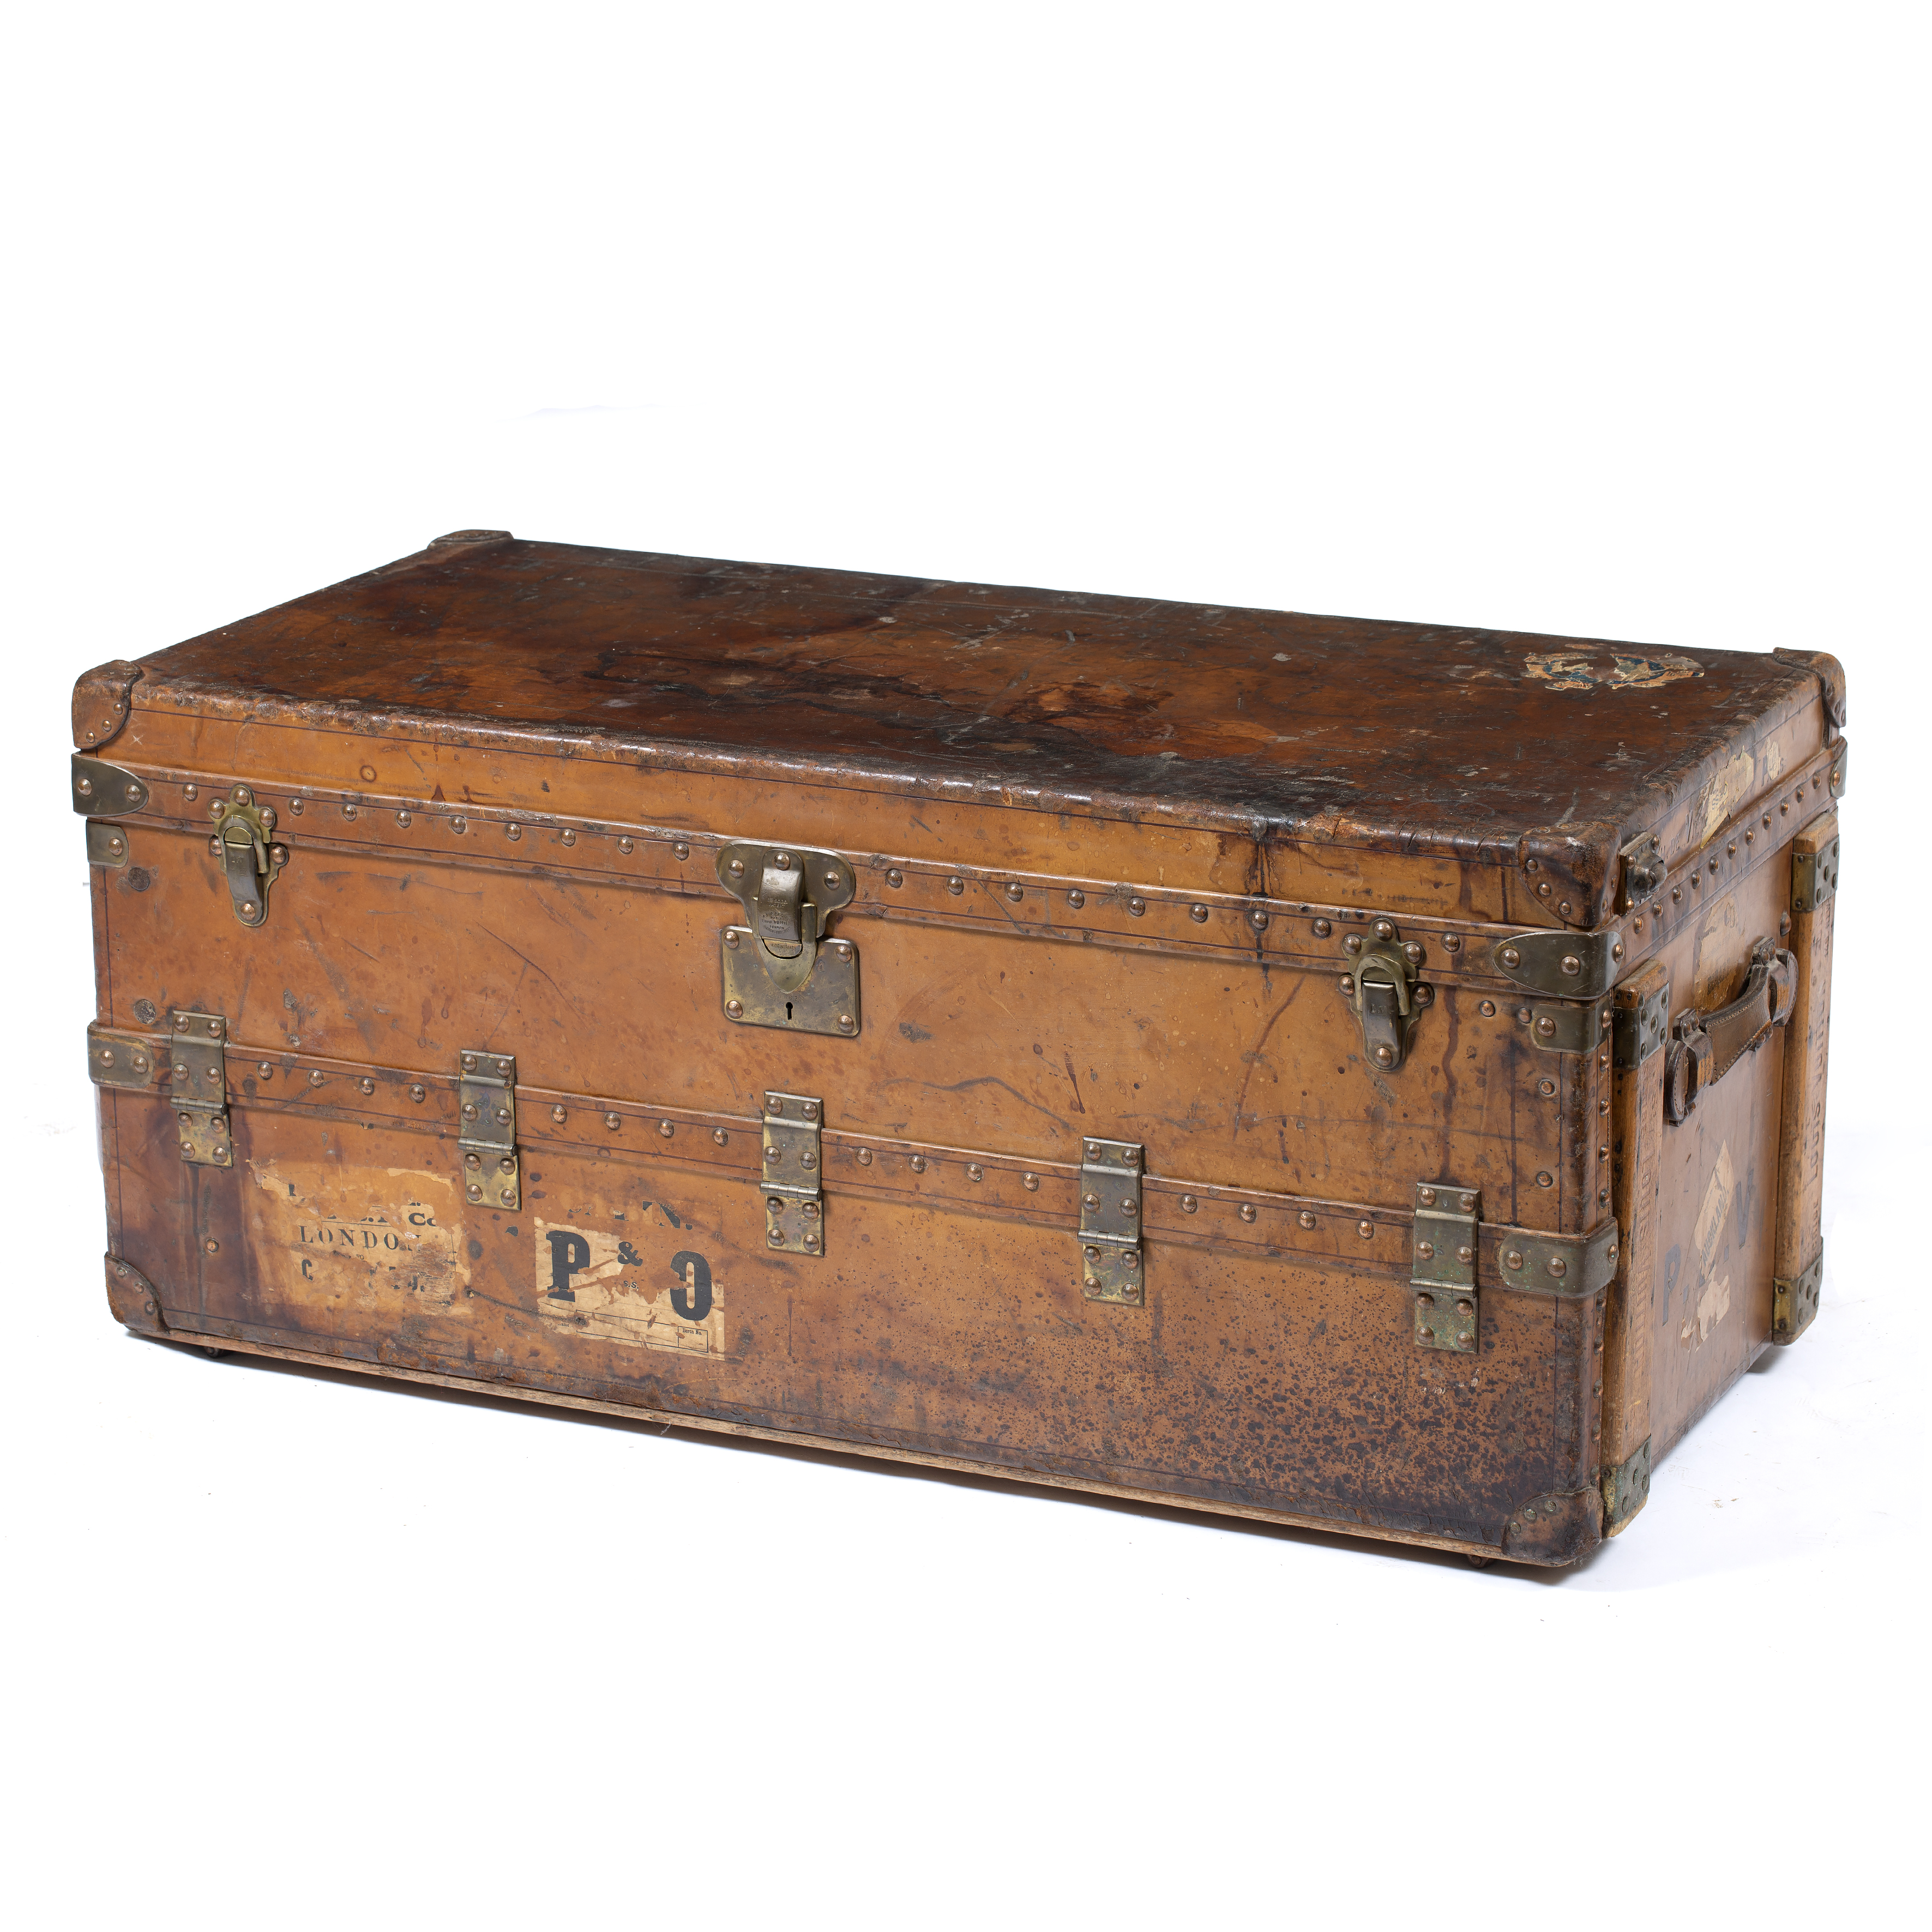 AN EARLY 20TH CENTURY LOUIS VUITTON BROWN LEATHER WARDROBE TRUNK  Image